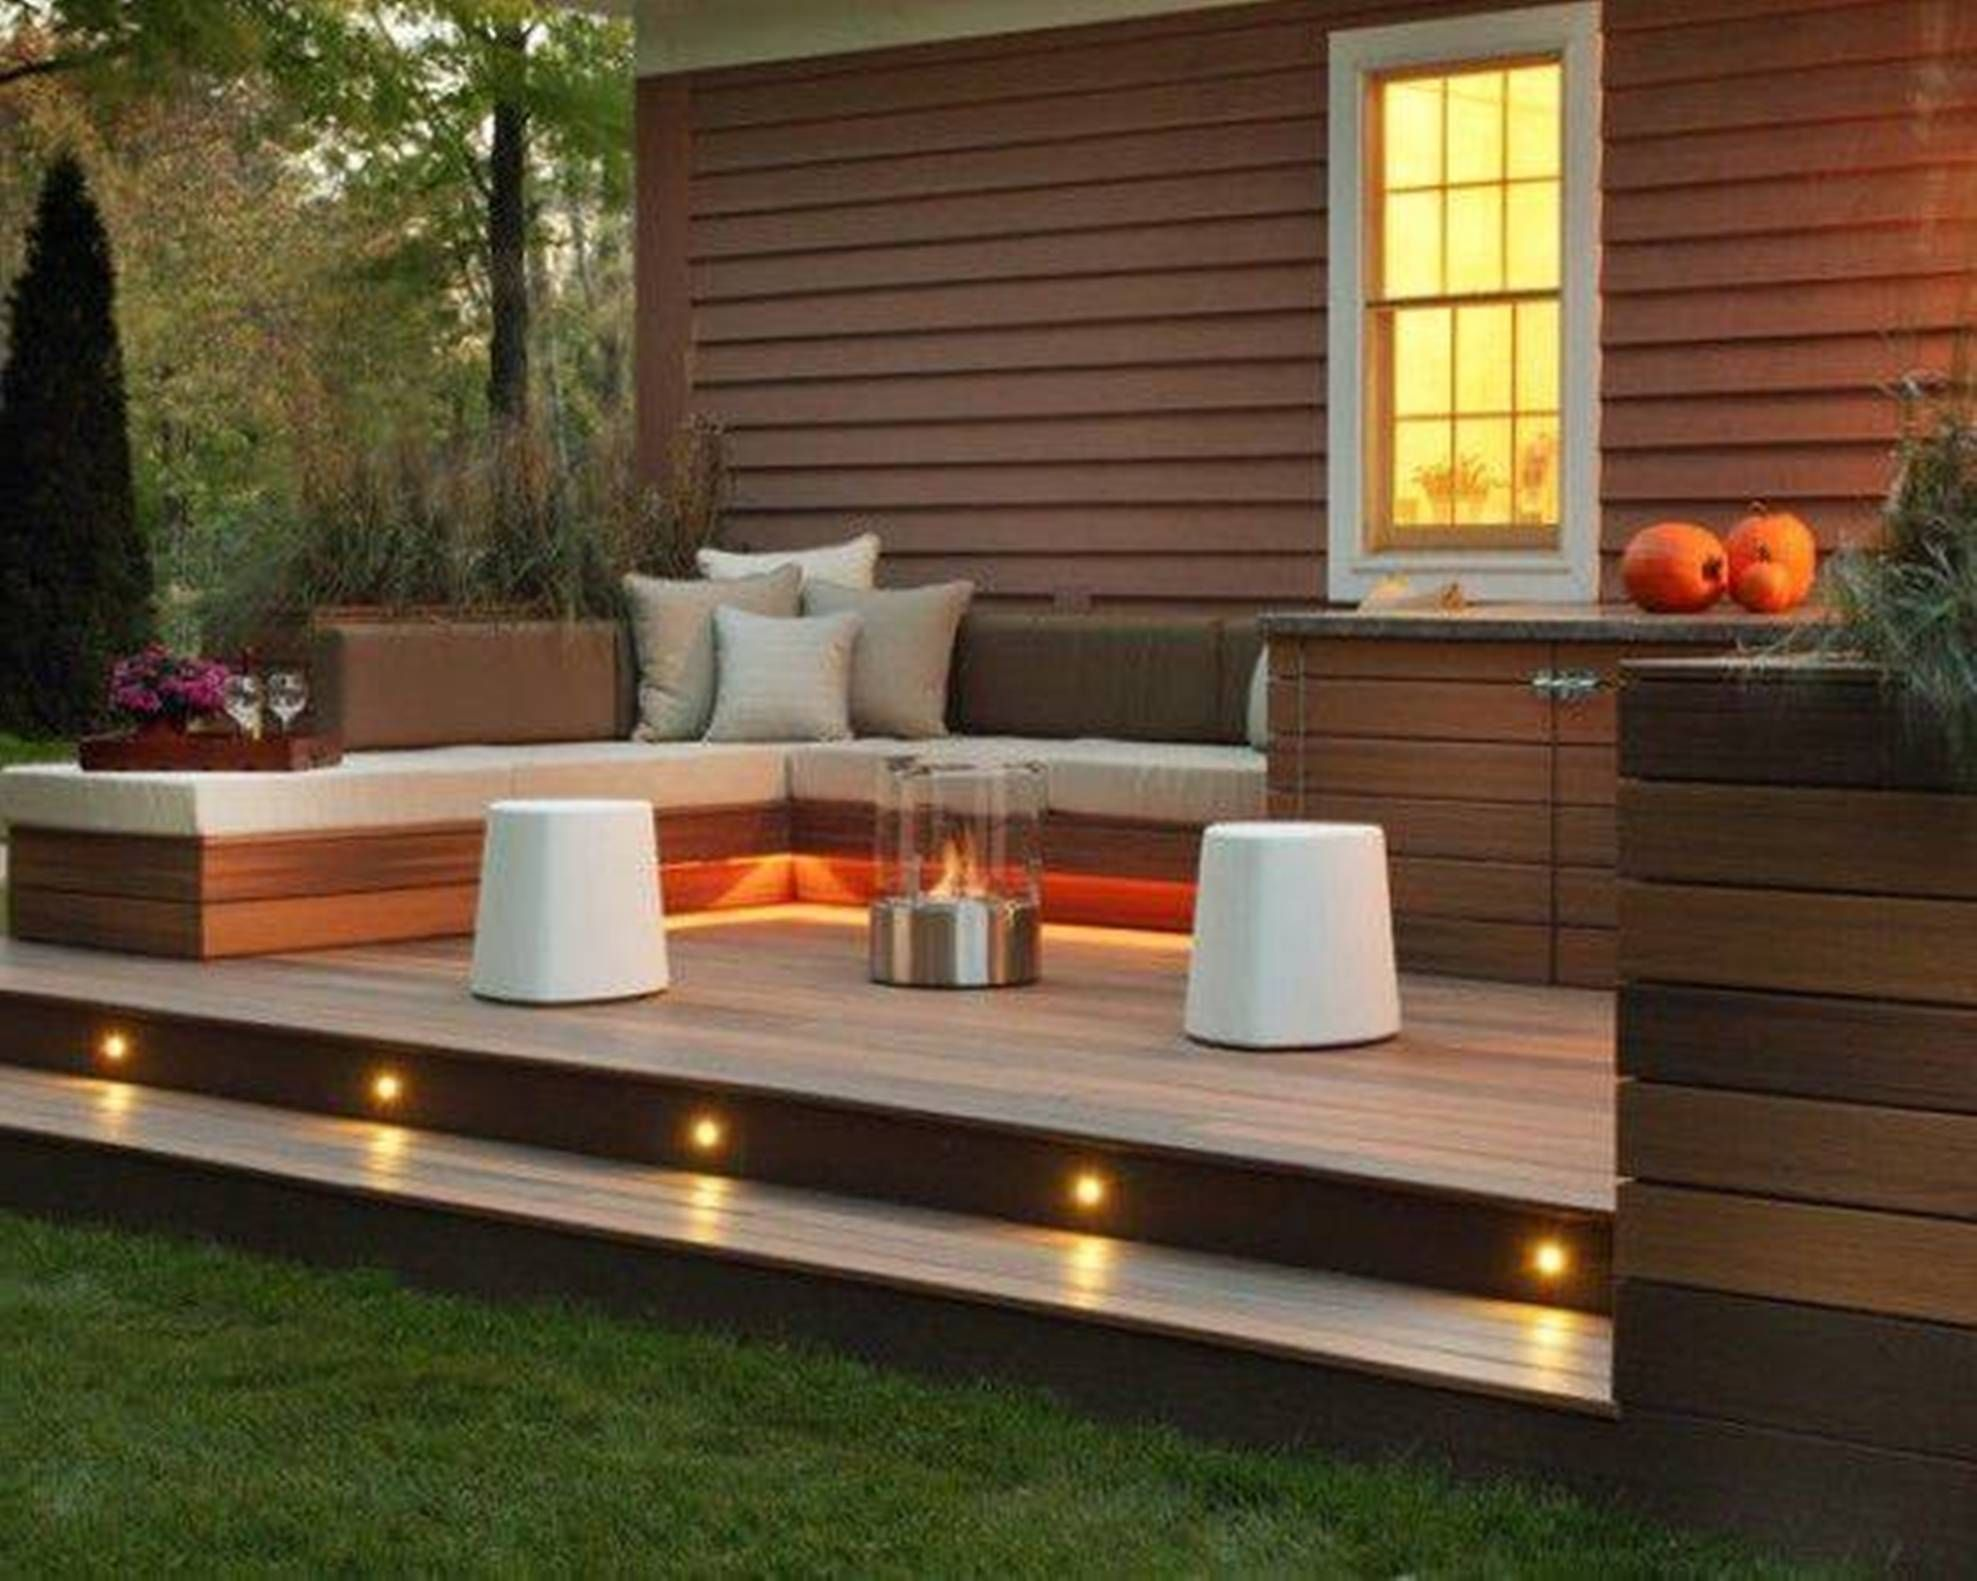 Ideas For Deck Design unique patio deck designs 75 inspiring and modern deck design ideas for a relax in the Landscaping And Outdoor Building Great Small Backyard Deck Designs Small Backyard Deck Designs With